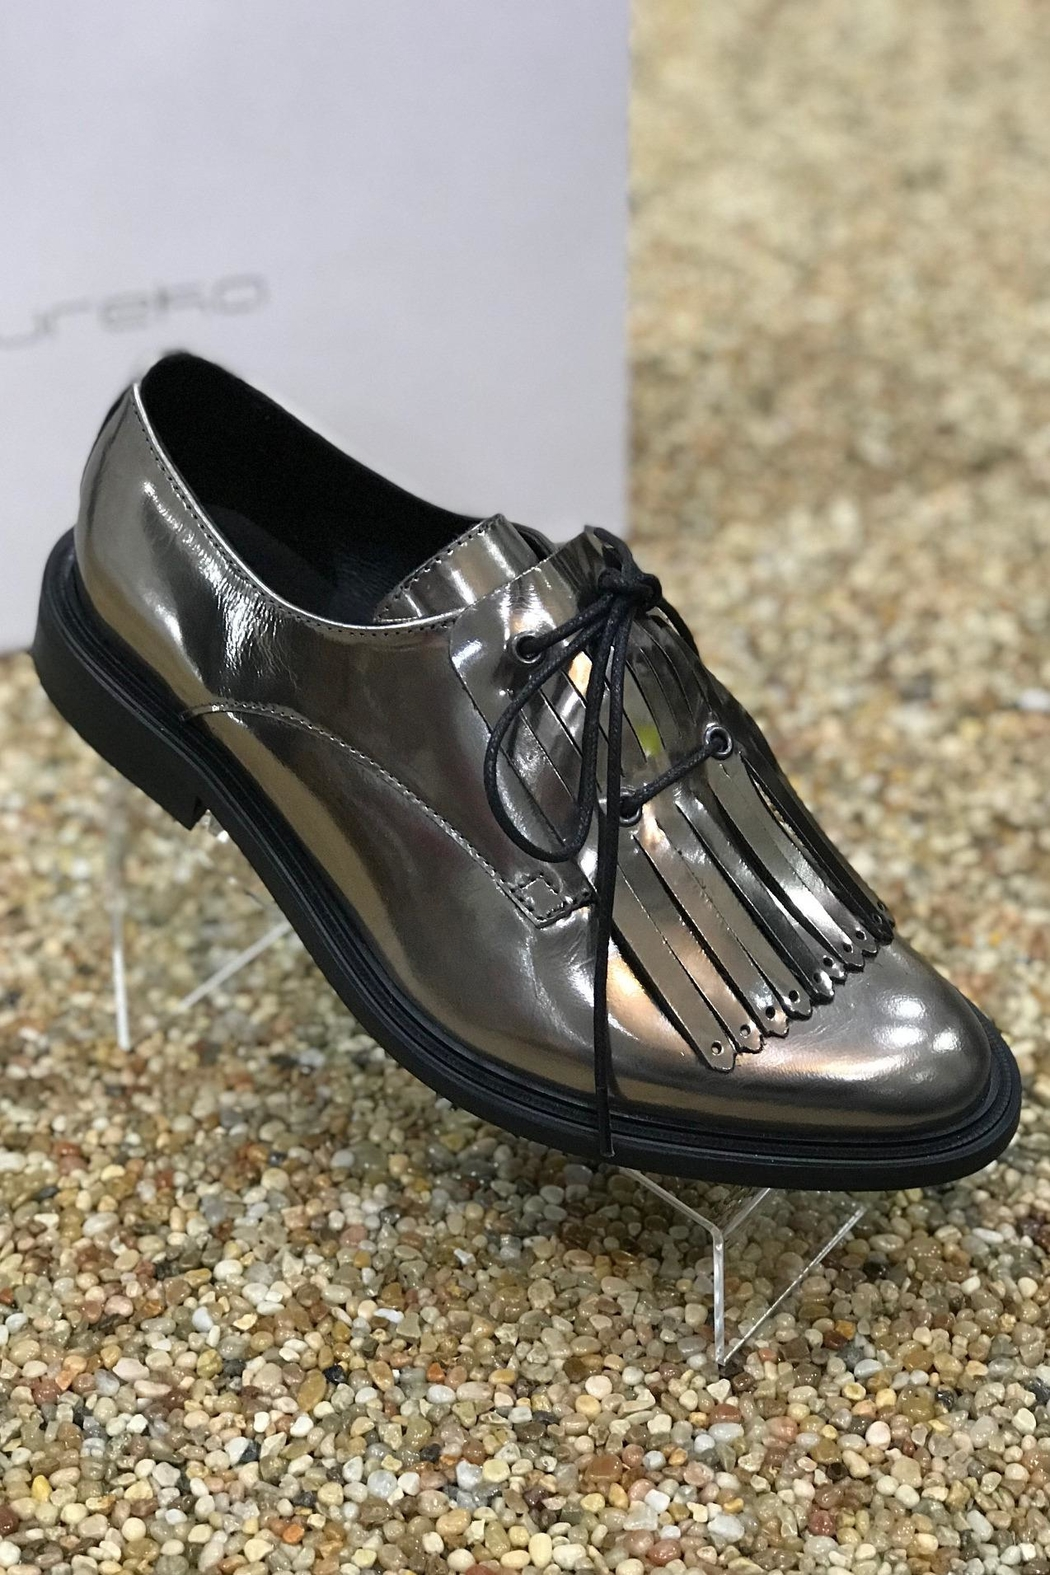 Eureka Mirror Finish Oxford Flat Shoes - Front Cropped Image